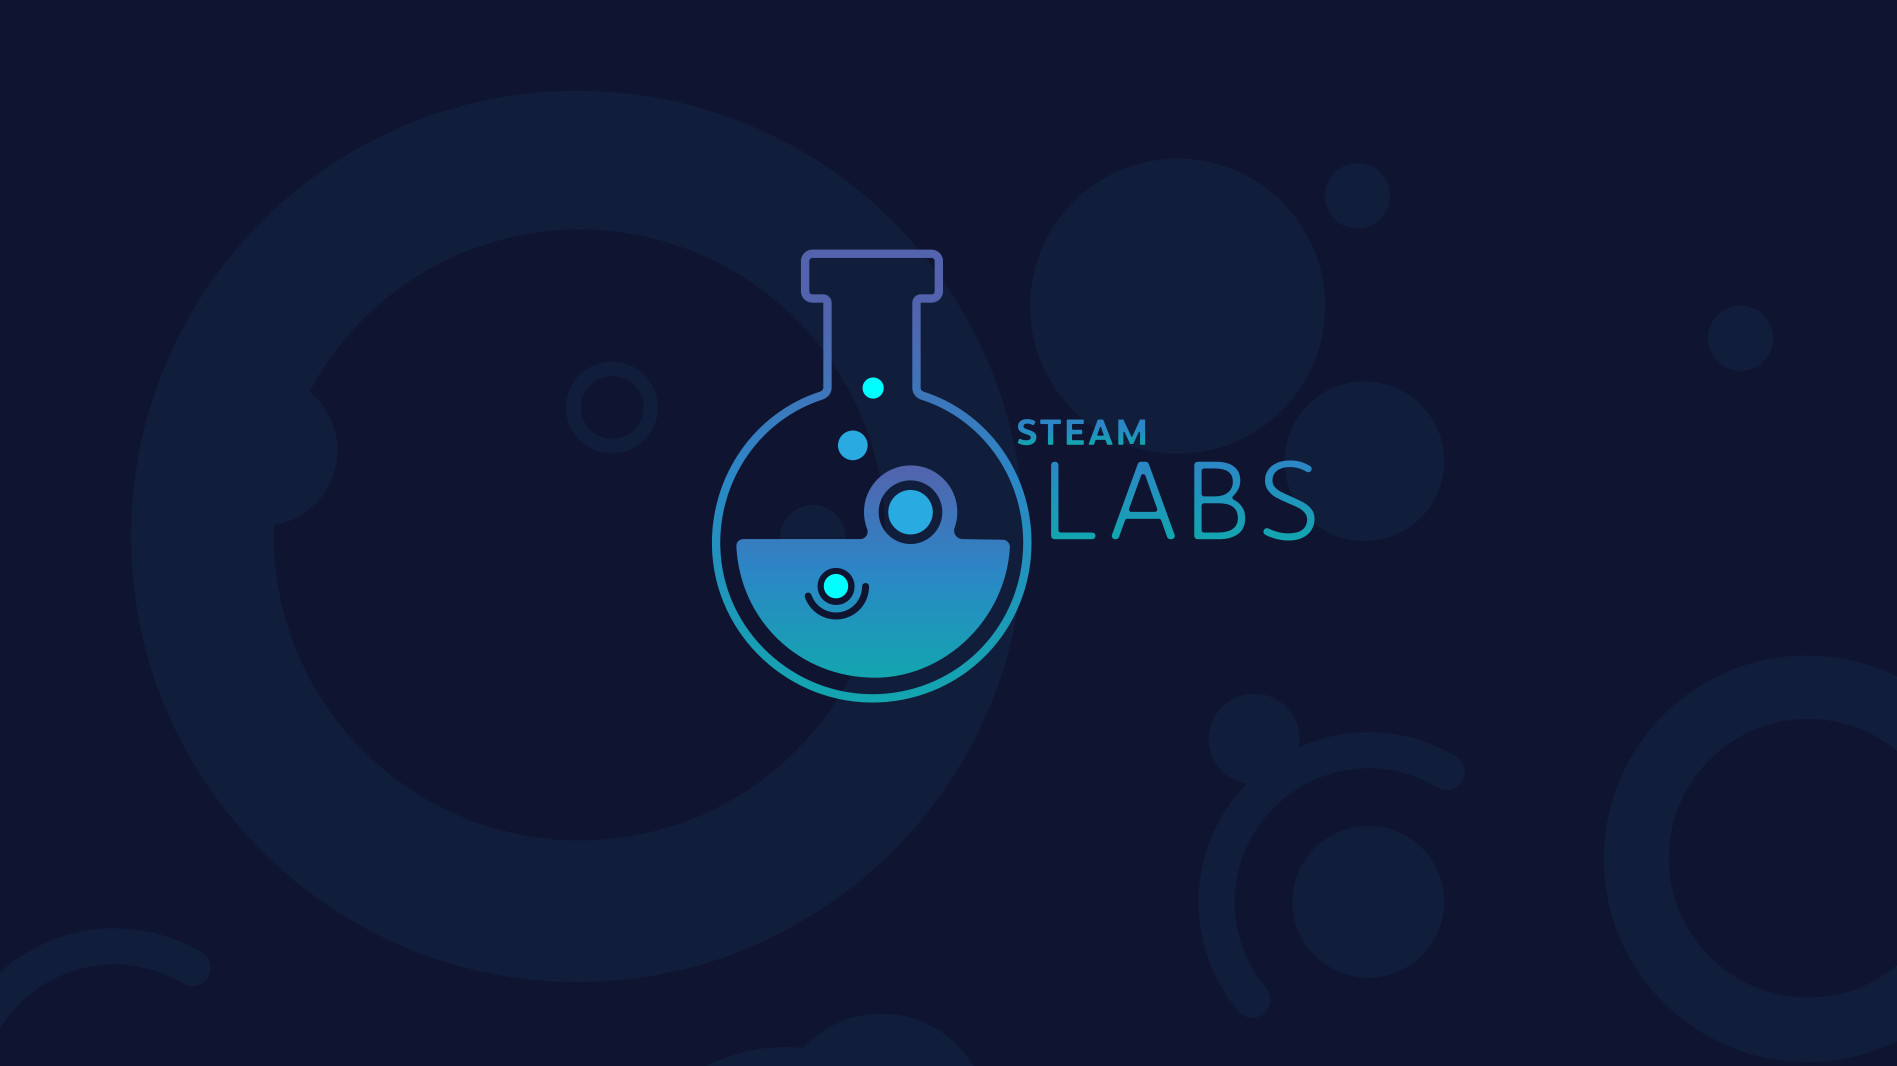 Steam Labs icon